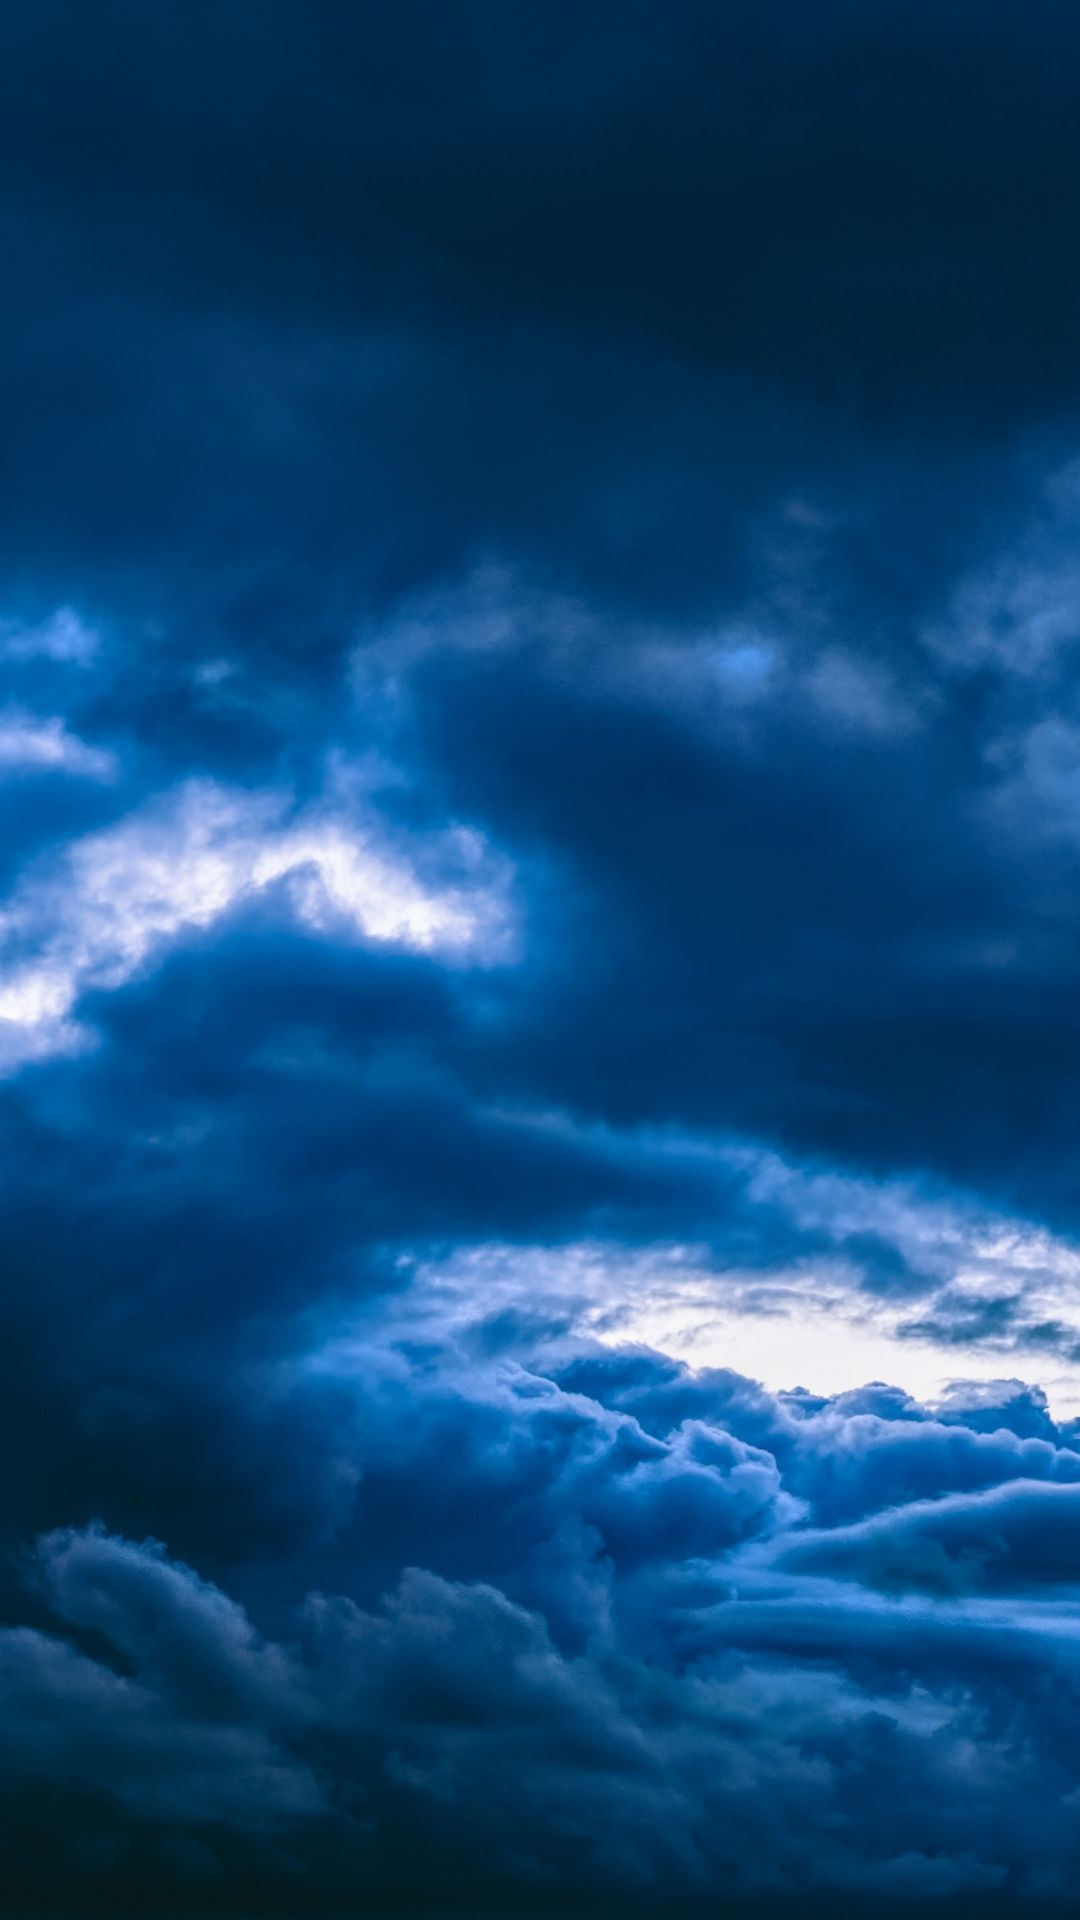 Storm Dark Clouds Sky Wallpaper Clouds Wallpaper Iphone Clouds Cool Pictures For Wallpaper